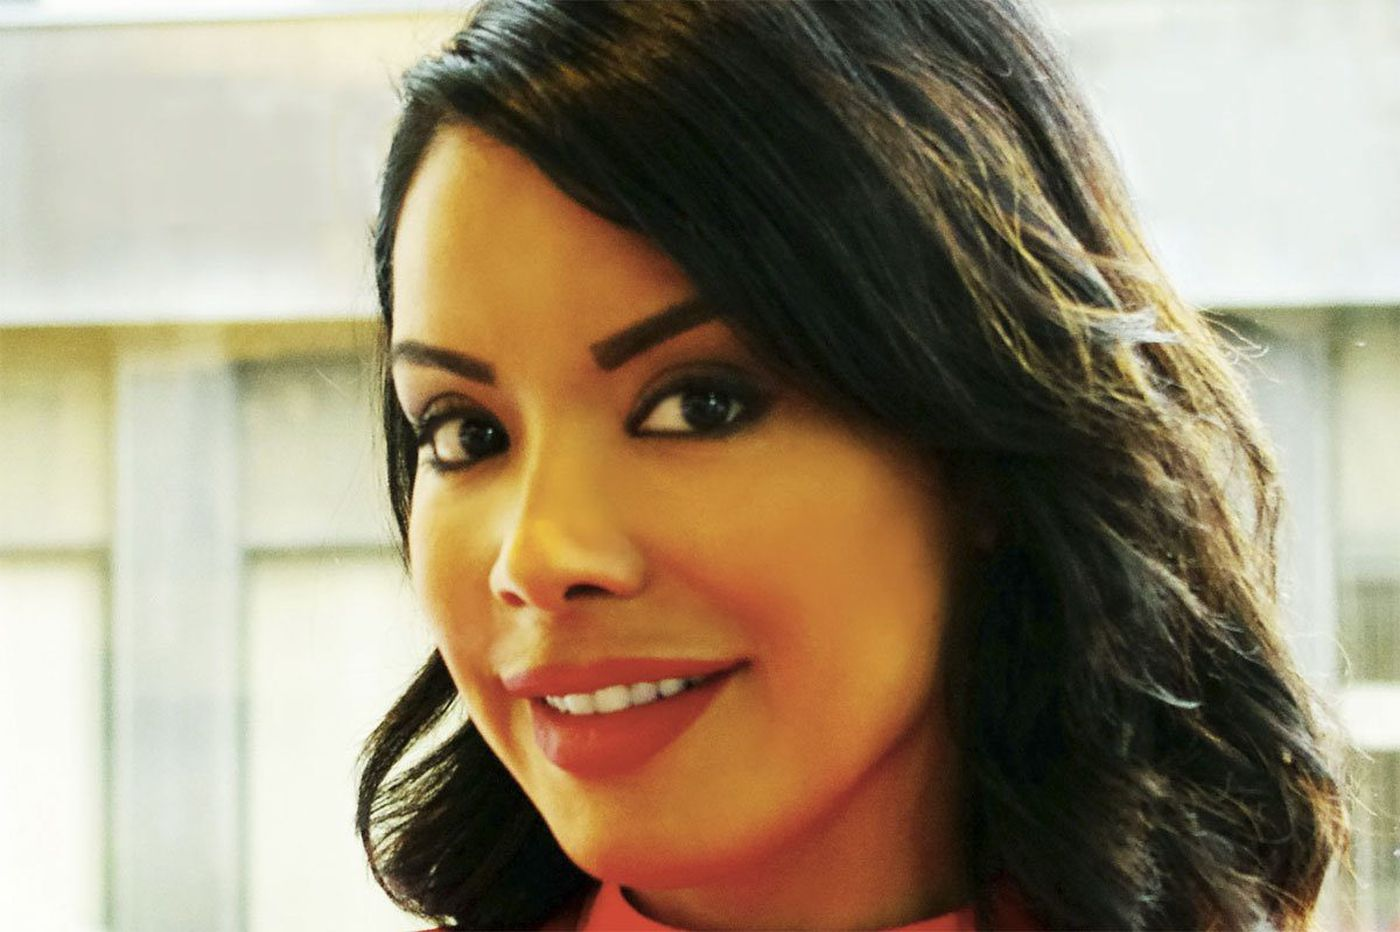 Erika Martin leaves NBC10